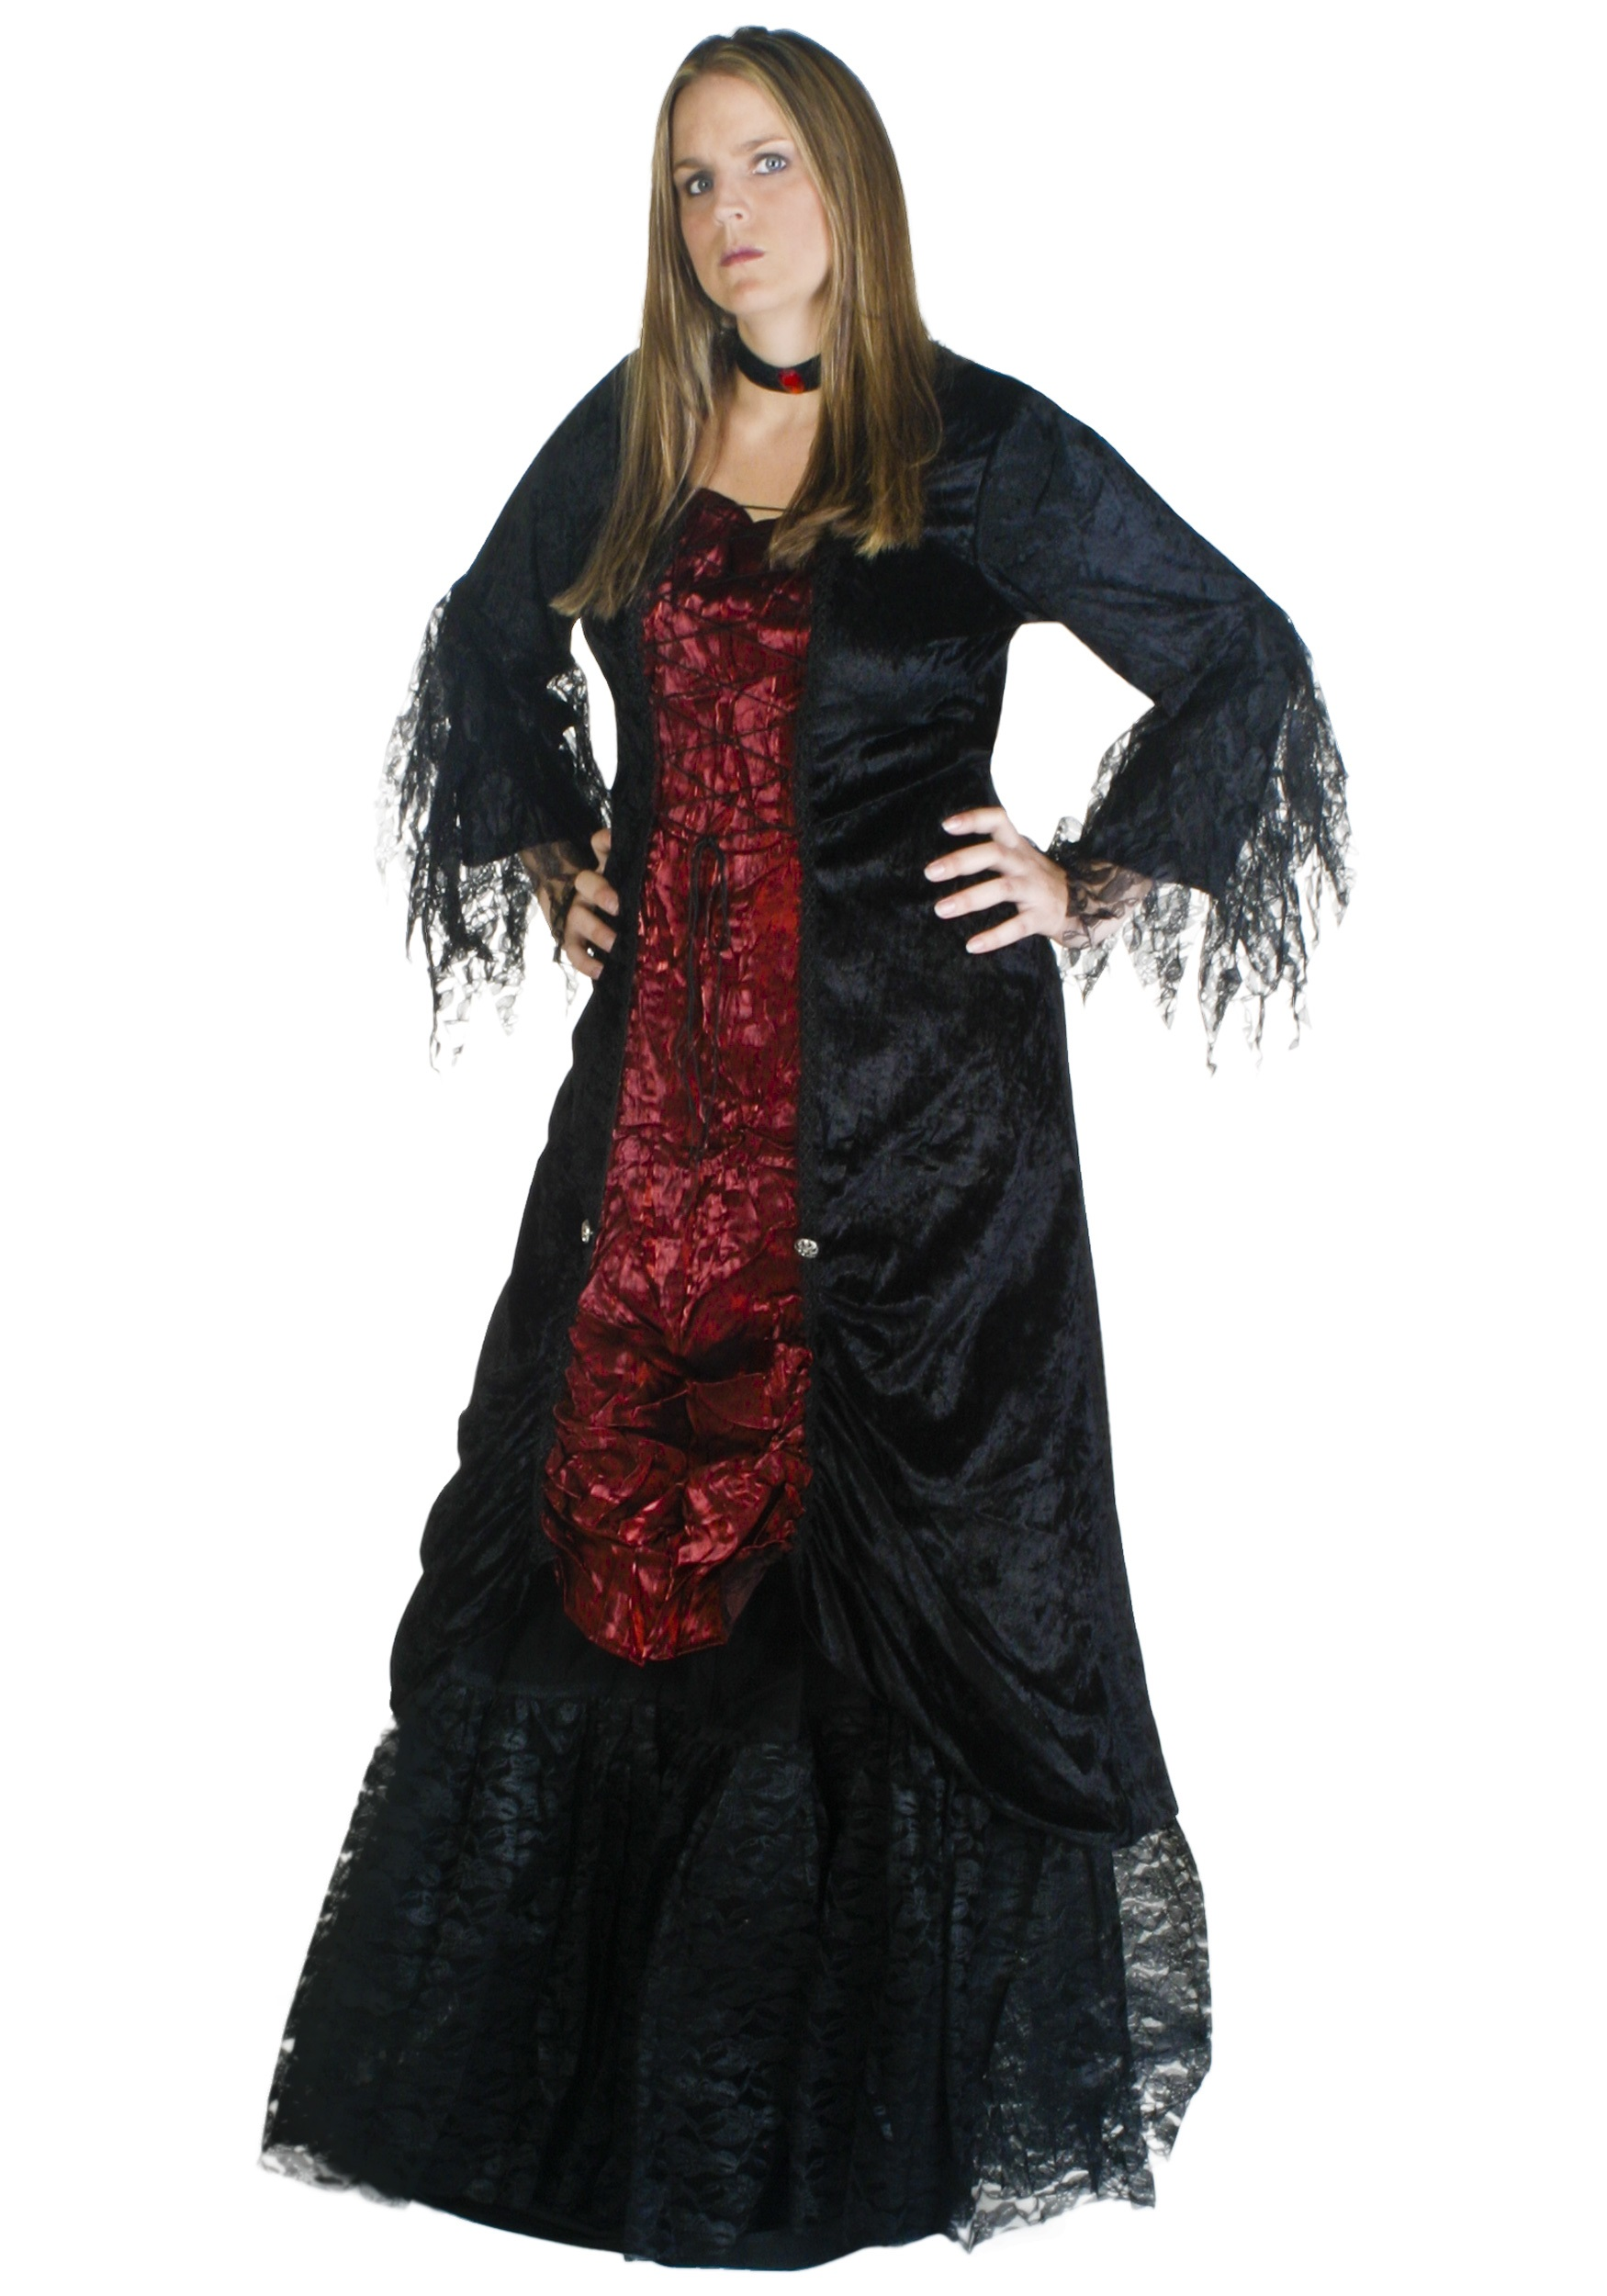 Plus Size Womens Gothic V&ire Costume  sc 1 st  Halloween Costumes & Plus Size Womens Gothic Vampire Costume - Halloween Costumes